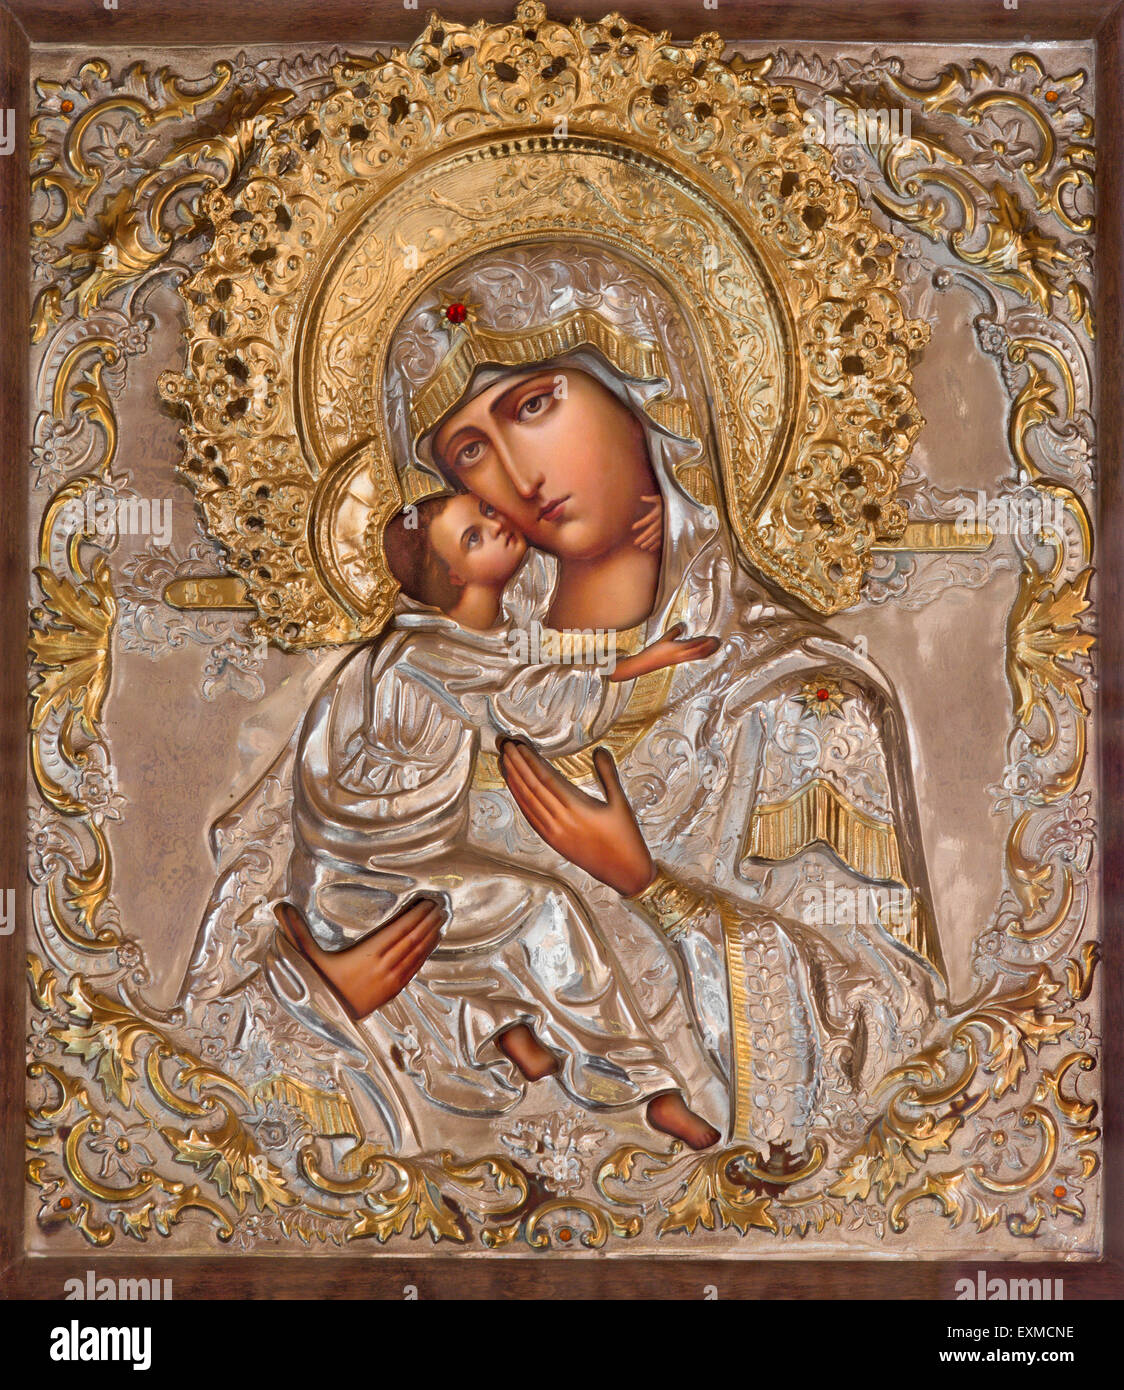 JERUSALEM, ISRAEL - MARCH 5, 2015: The icon of Madonna in Russian orthodox Church of Holy Mary of Magdalene by unknown Stock Photo